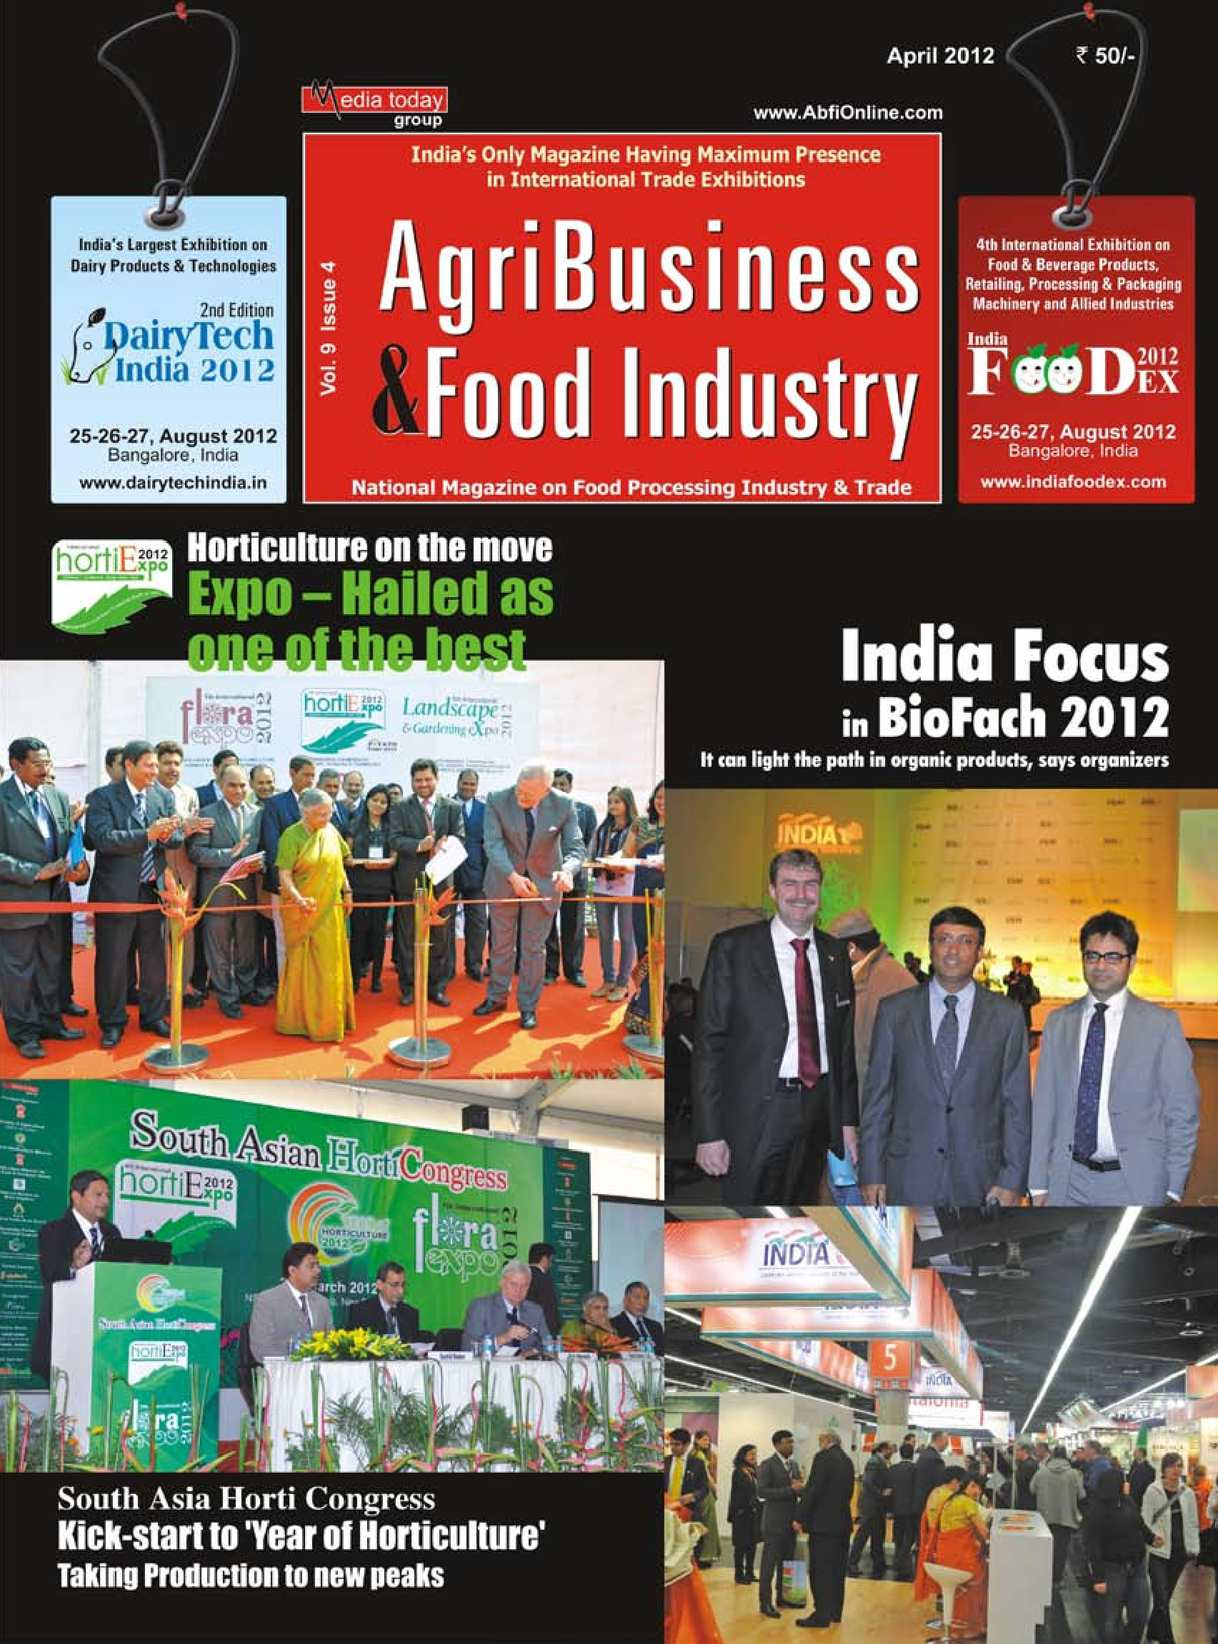 Calaméo - AgriBusiness & Food Industry - INDIA